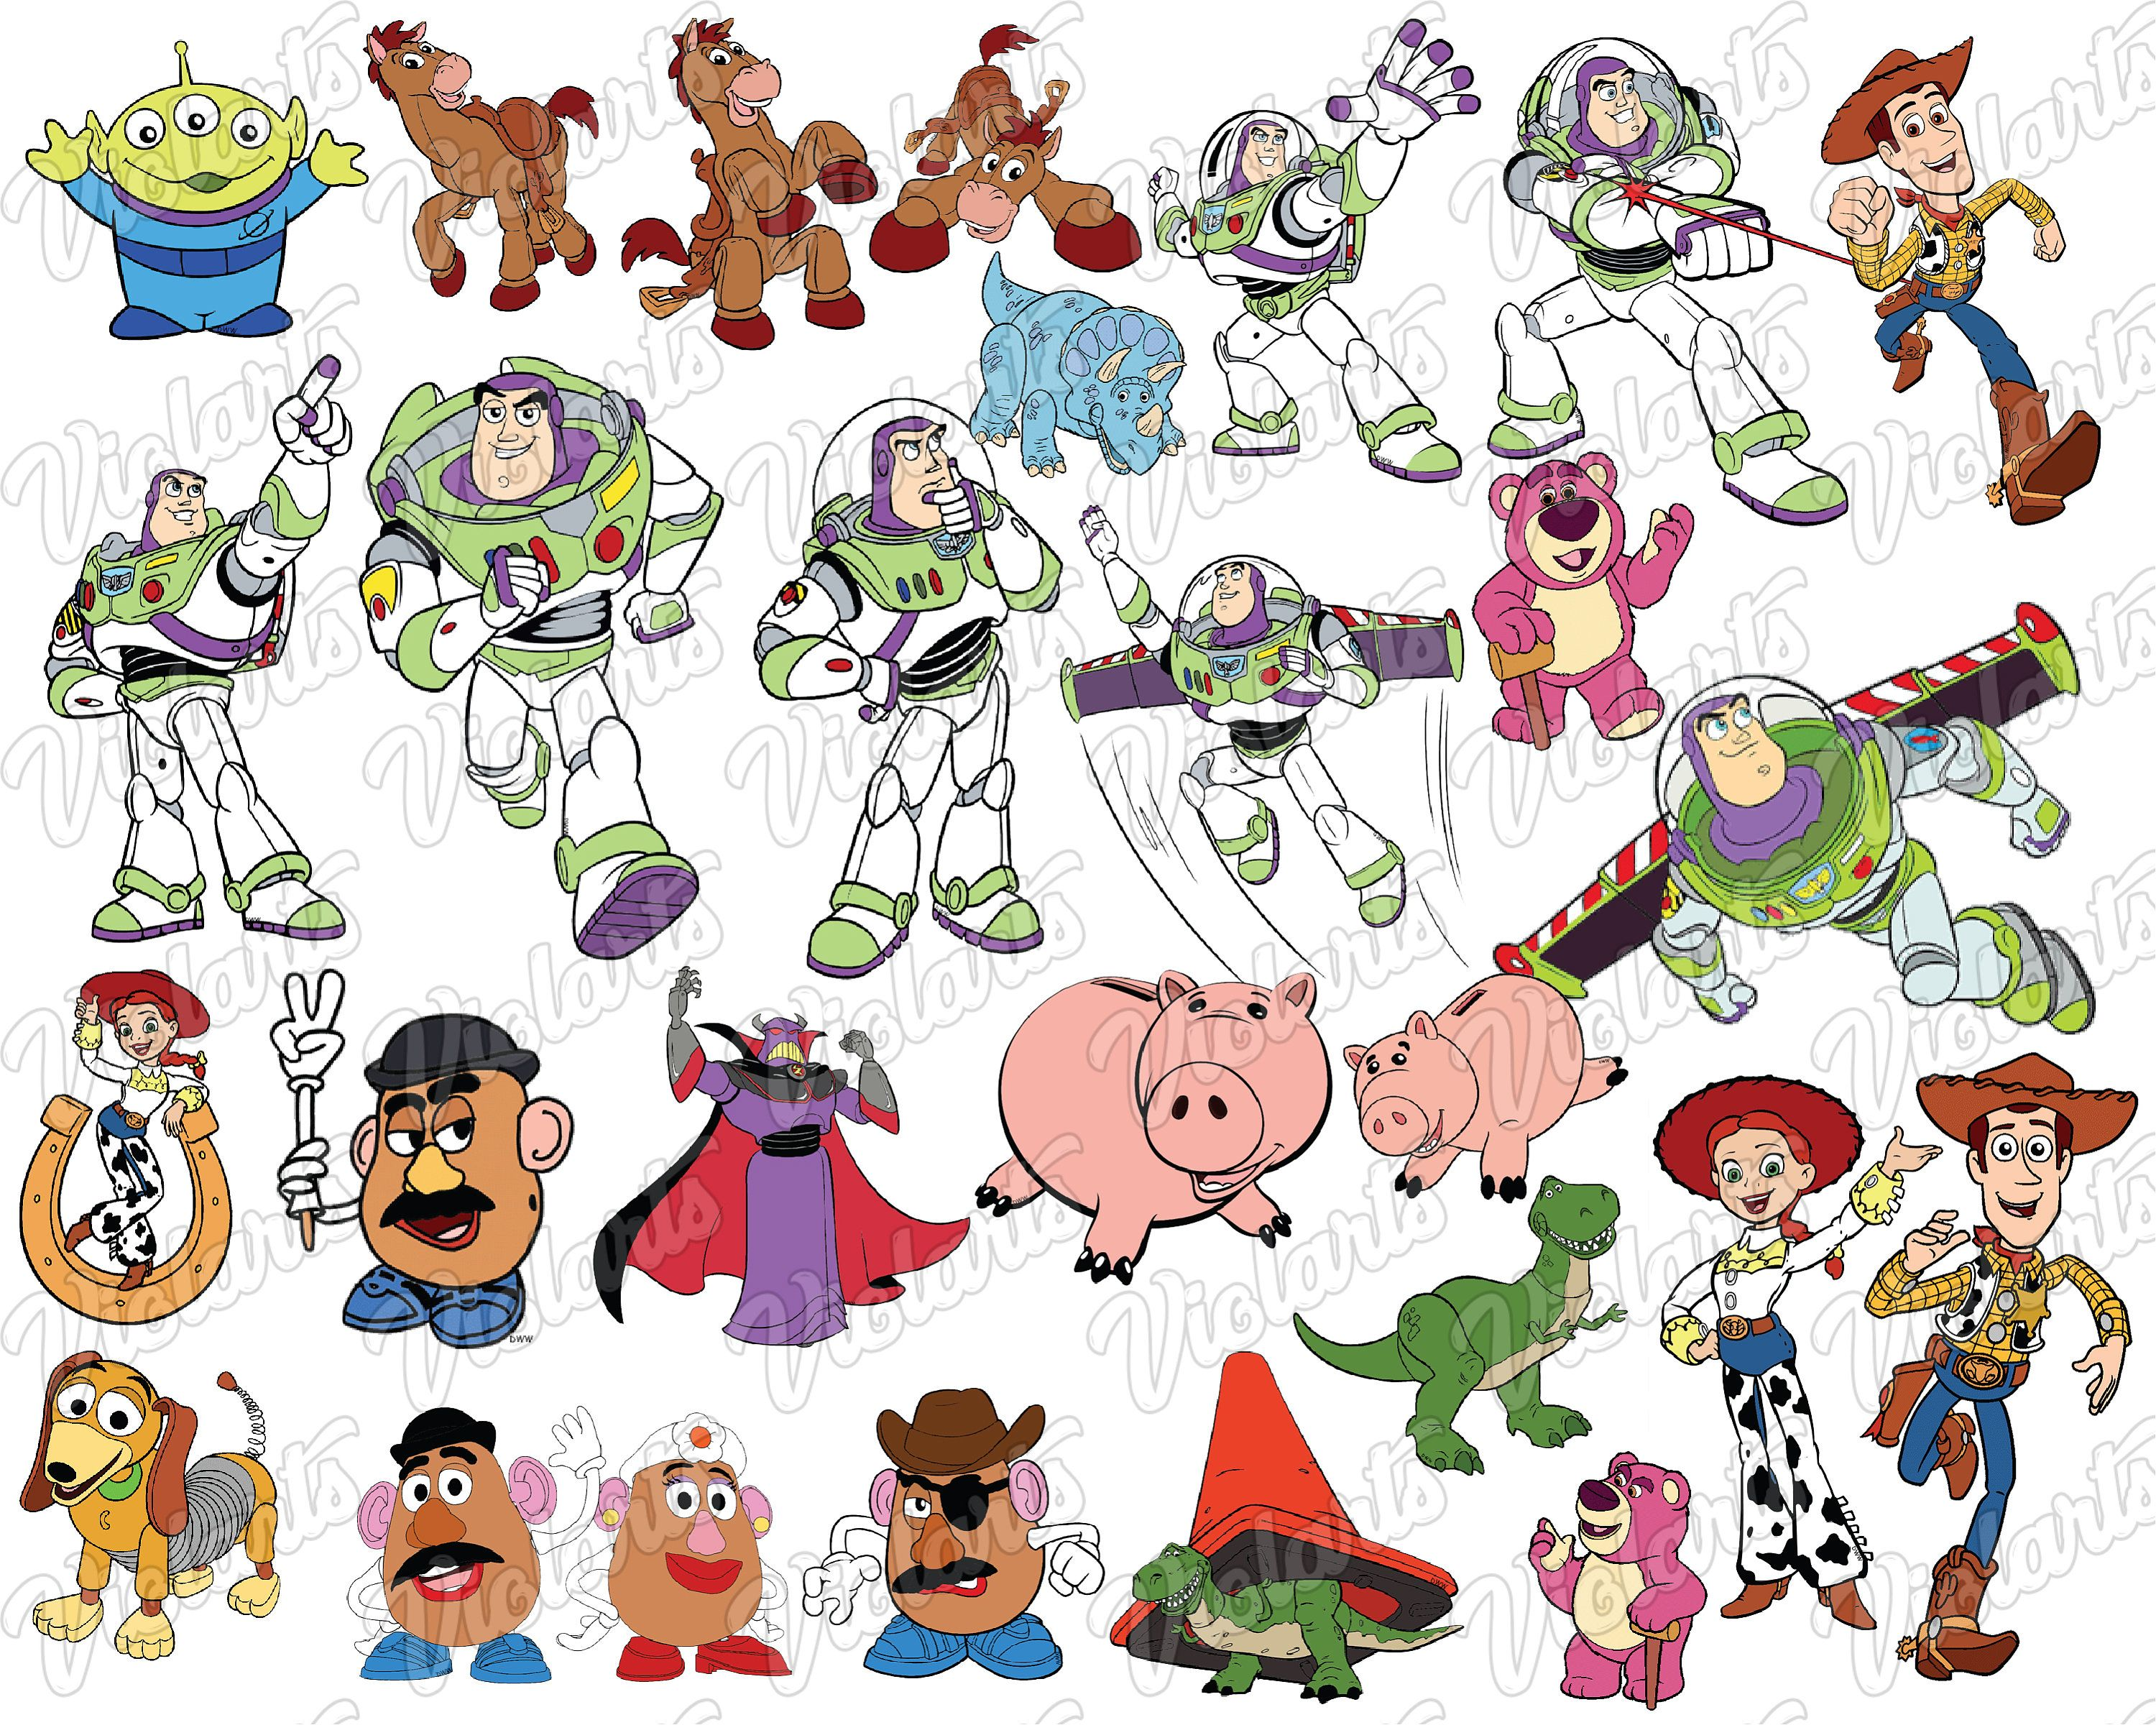 Toy Story Svg Toy Story 4 Svg Woody Svg Buzz Lightyear Svg Buzz Svg Toy Story Andy Svg Toy Story Andy Drawing Illustrations Toy Story